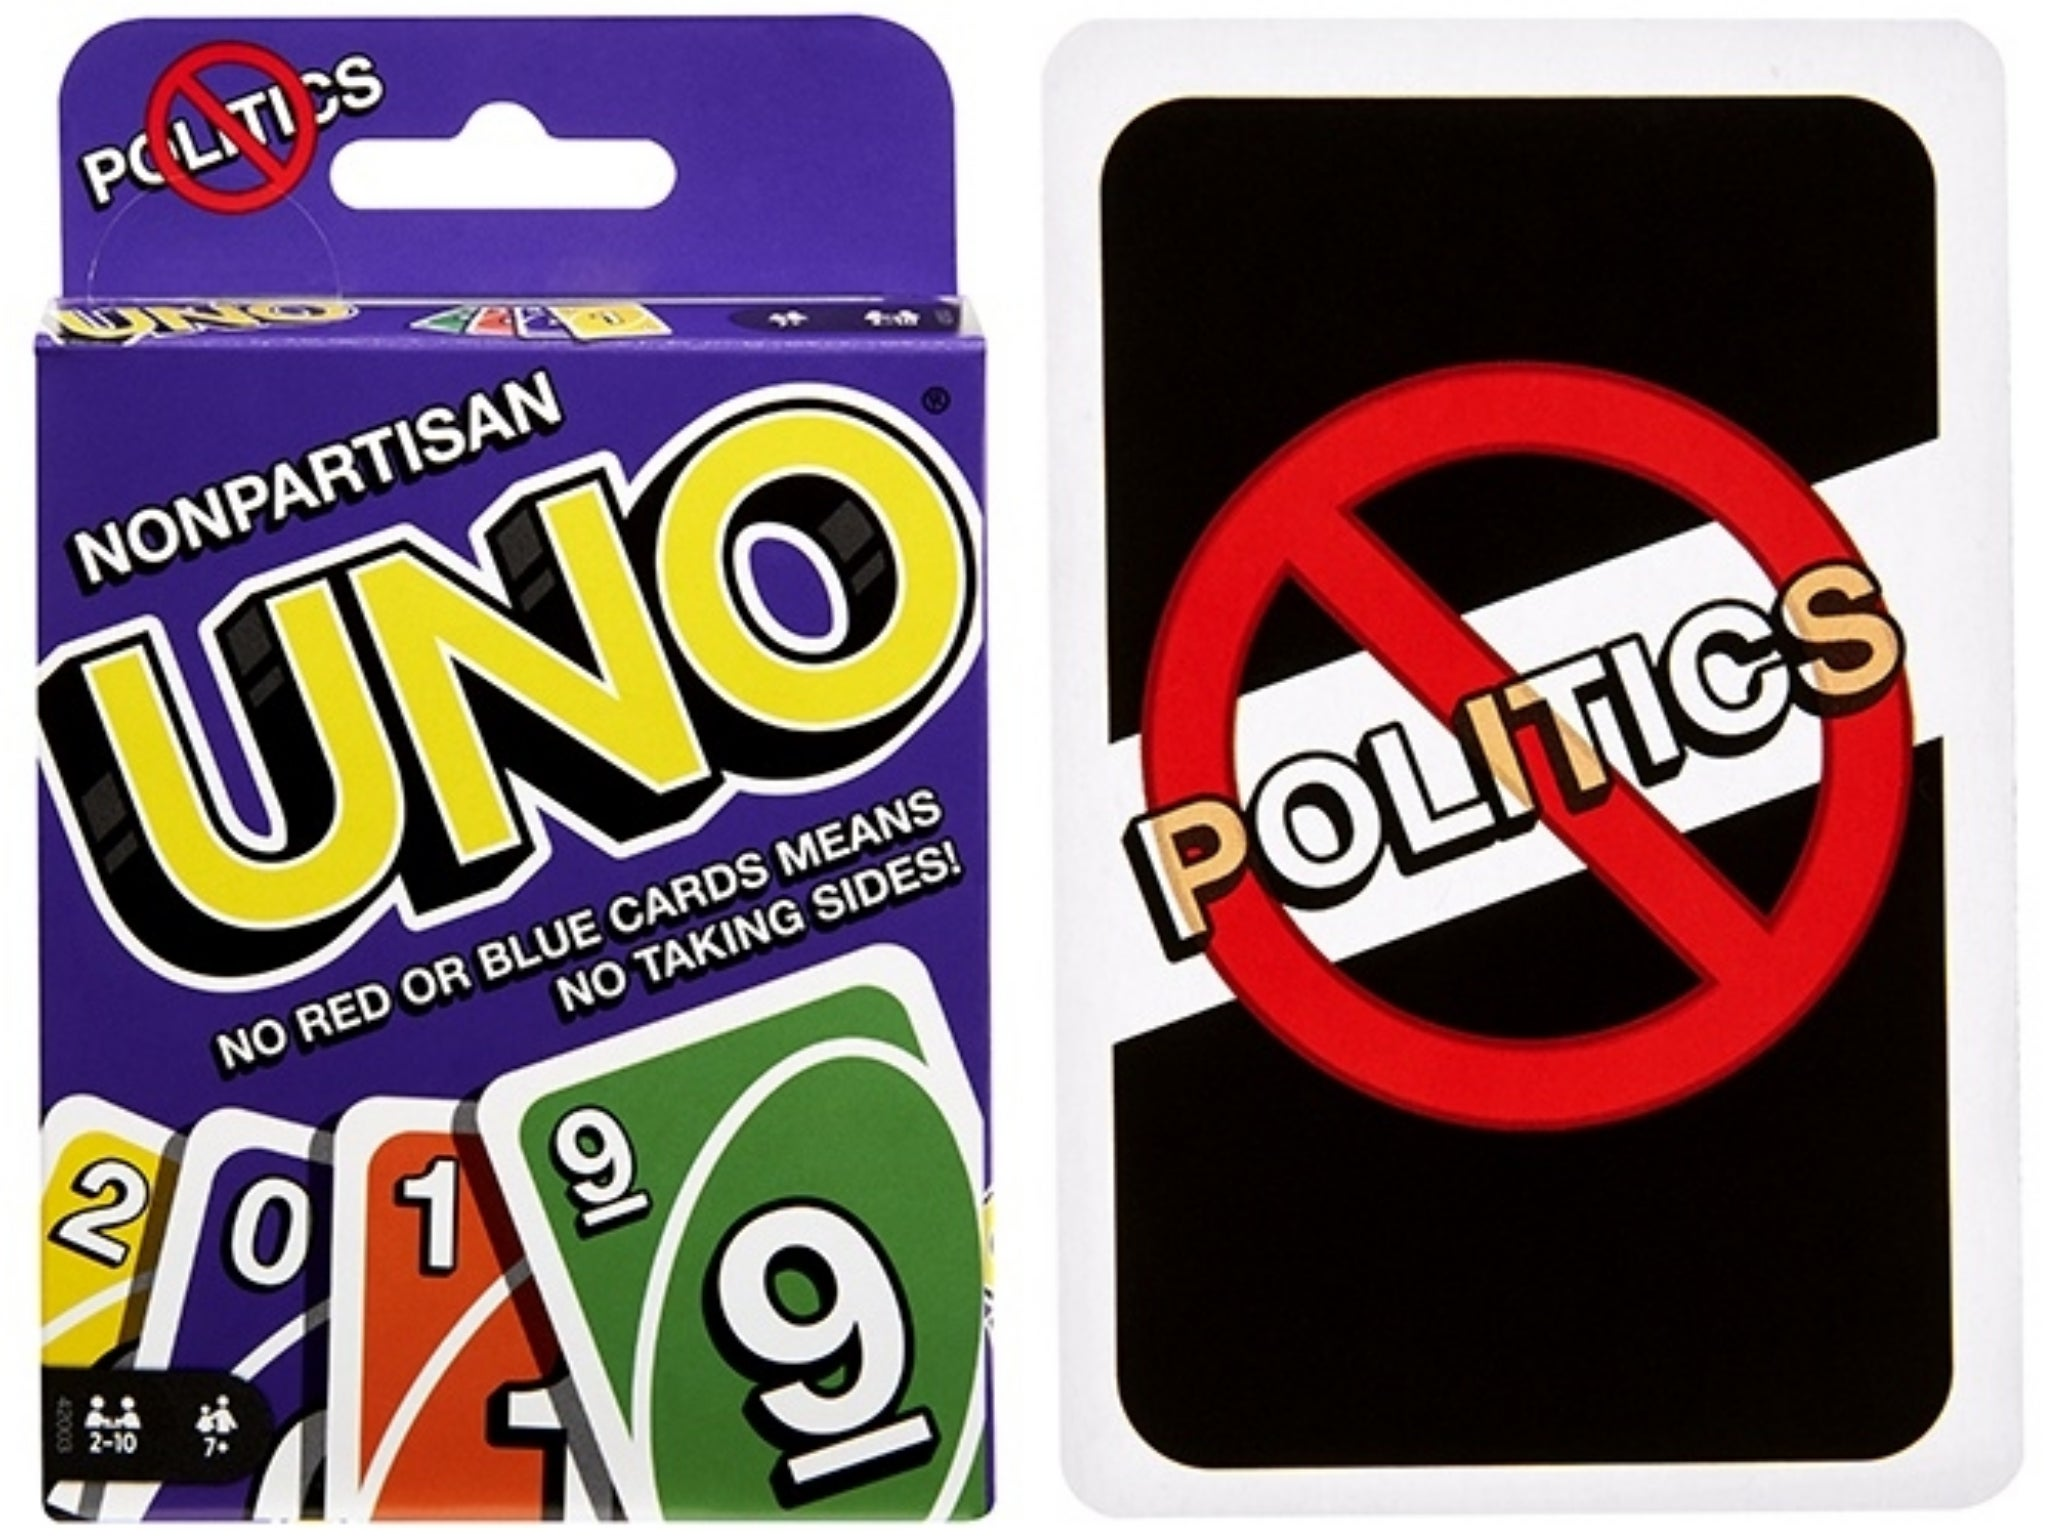 Uno deck removes red and blue cards to keep Thanksgiving dinner poli…